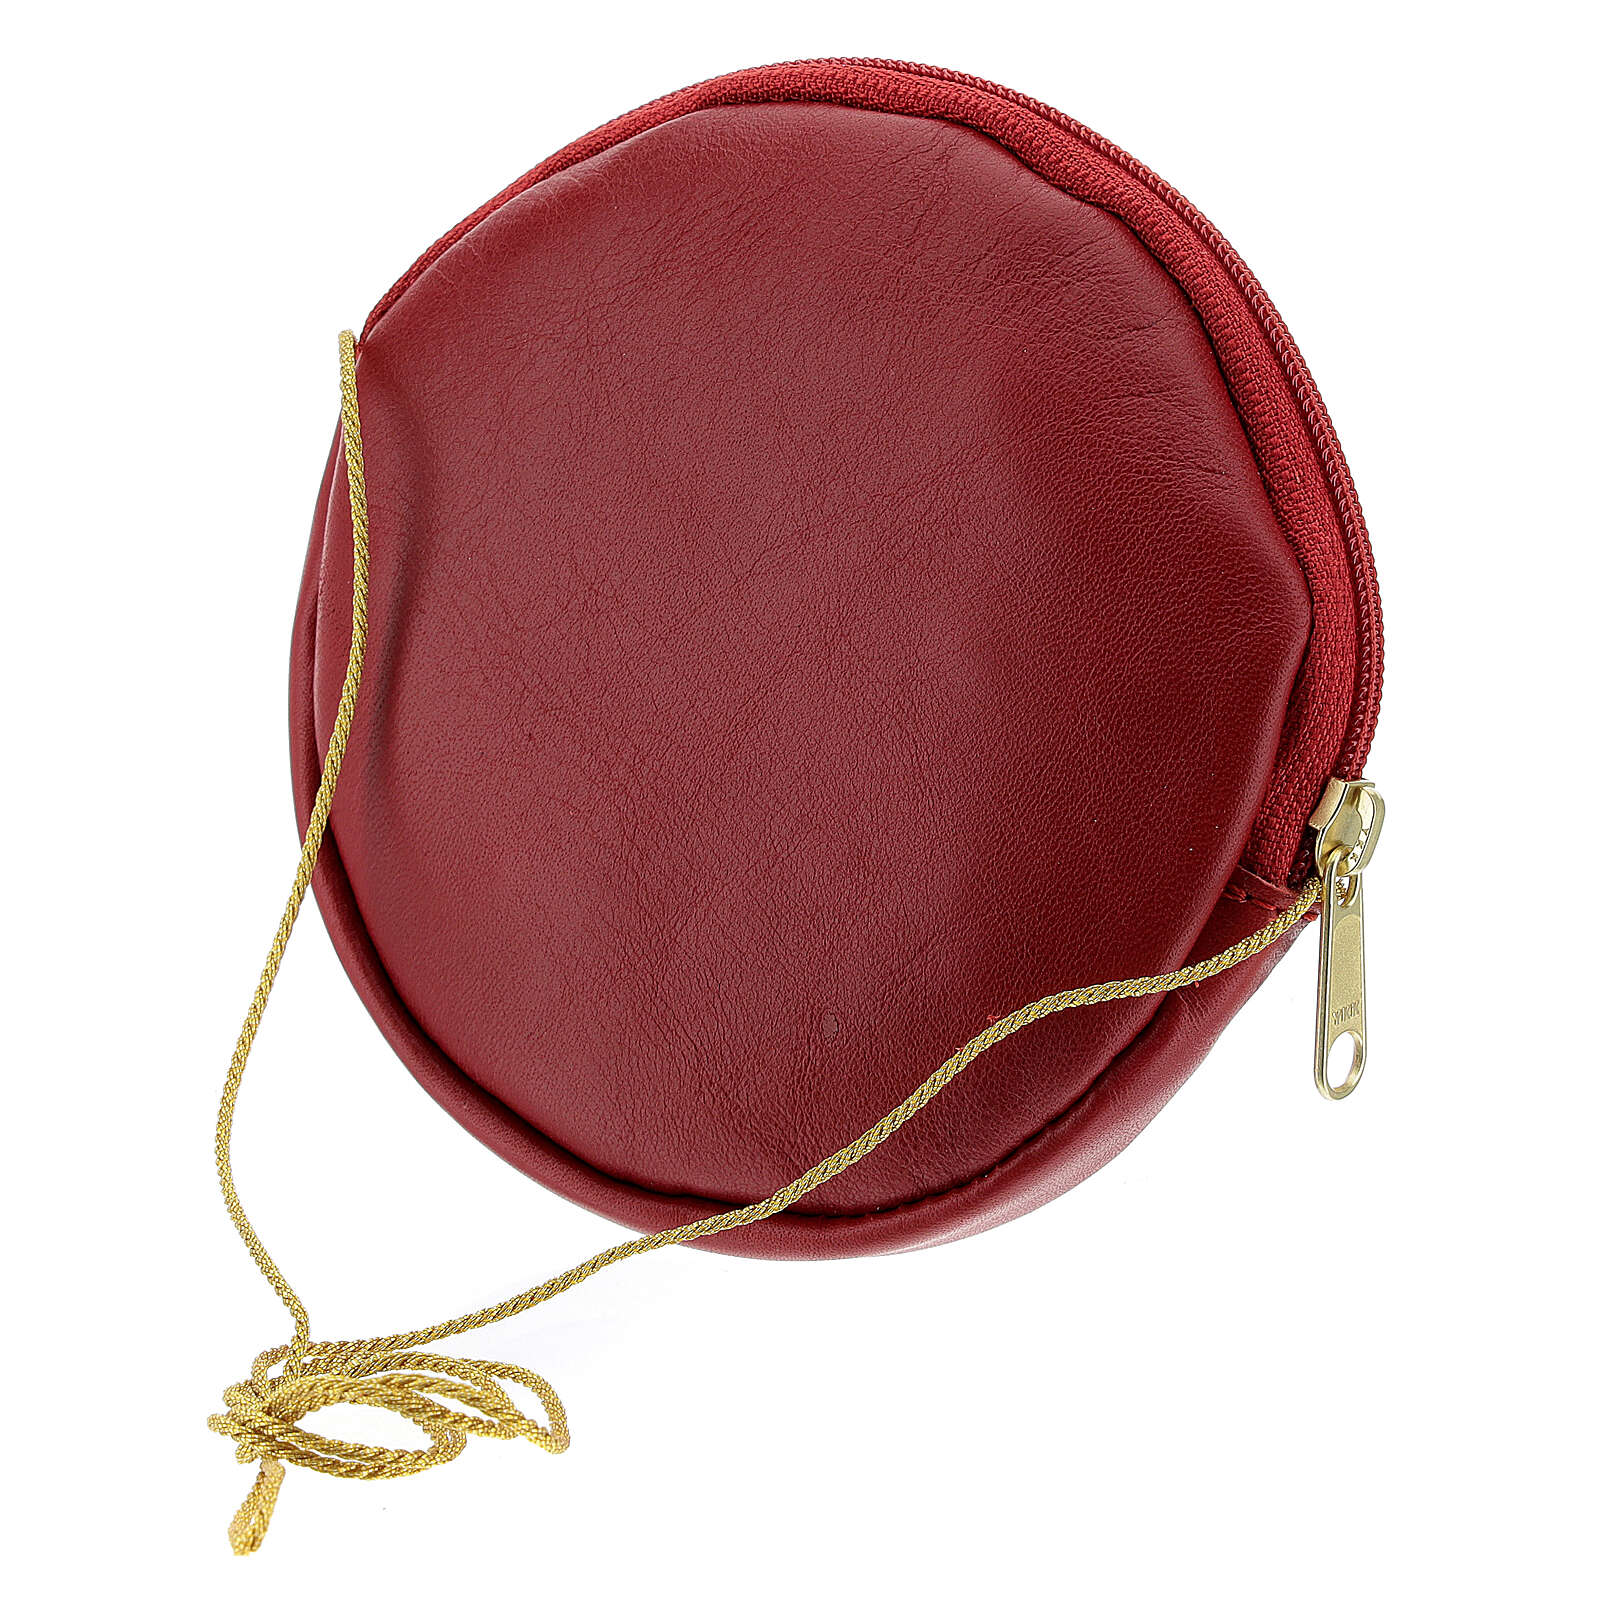 Paten burse 5 in real red leather with Chi-Rho 4